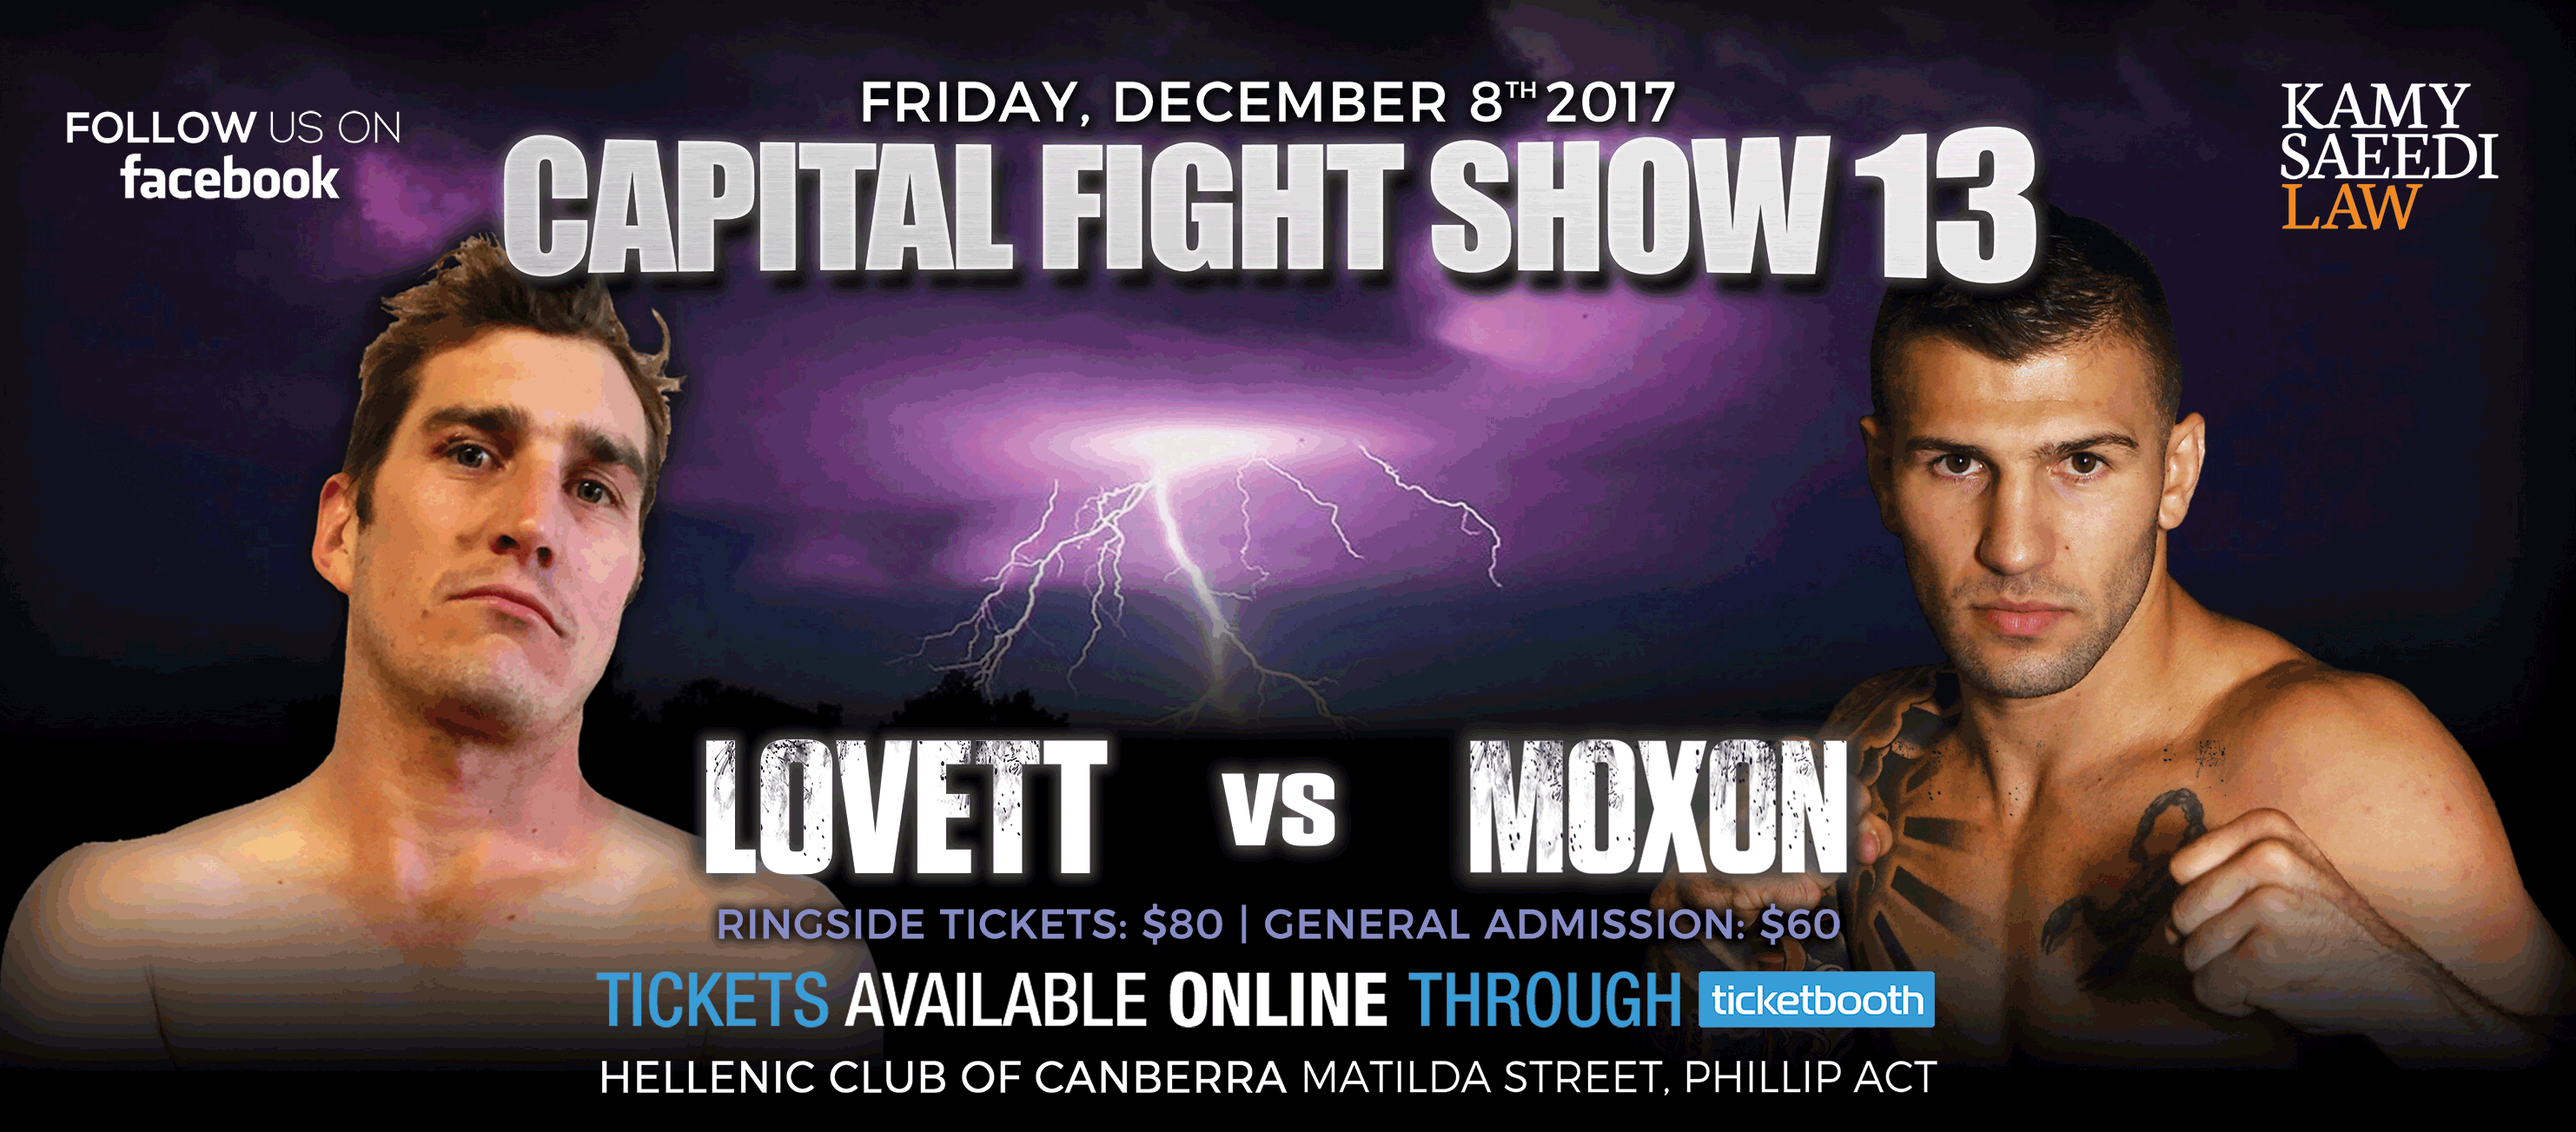 Tickets for Capital Fight Show 13 in Phillip from Ticketbooth